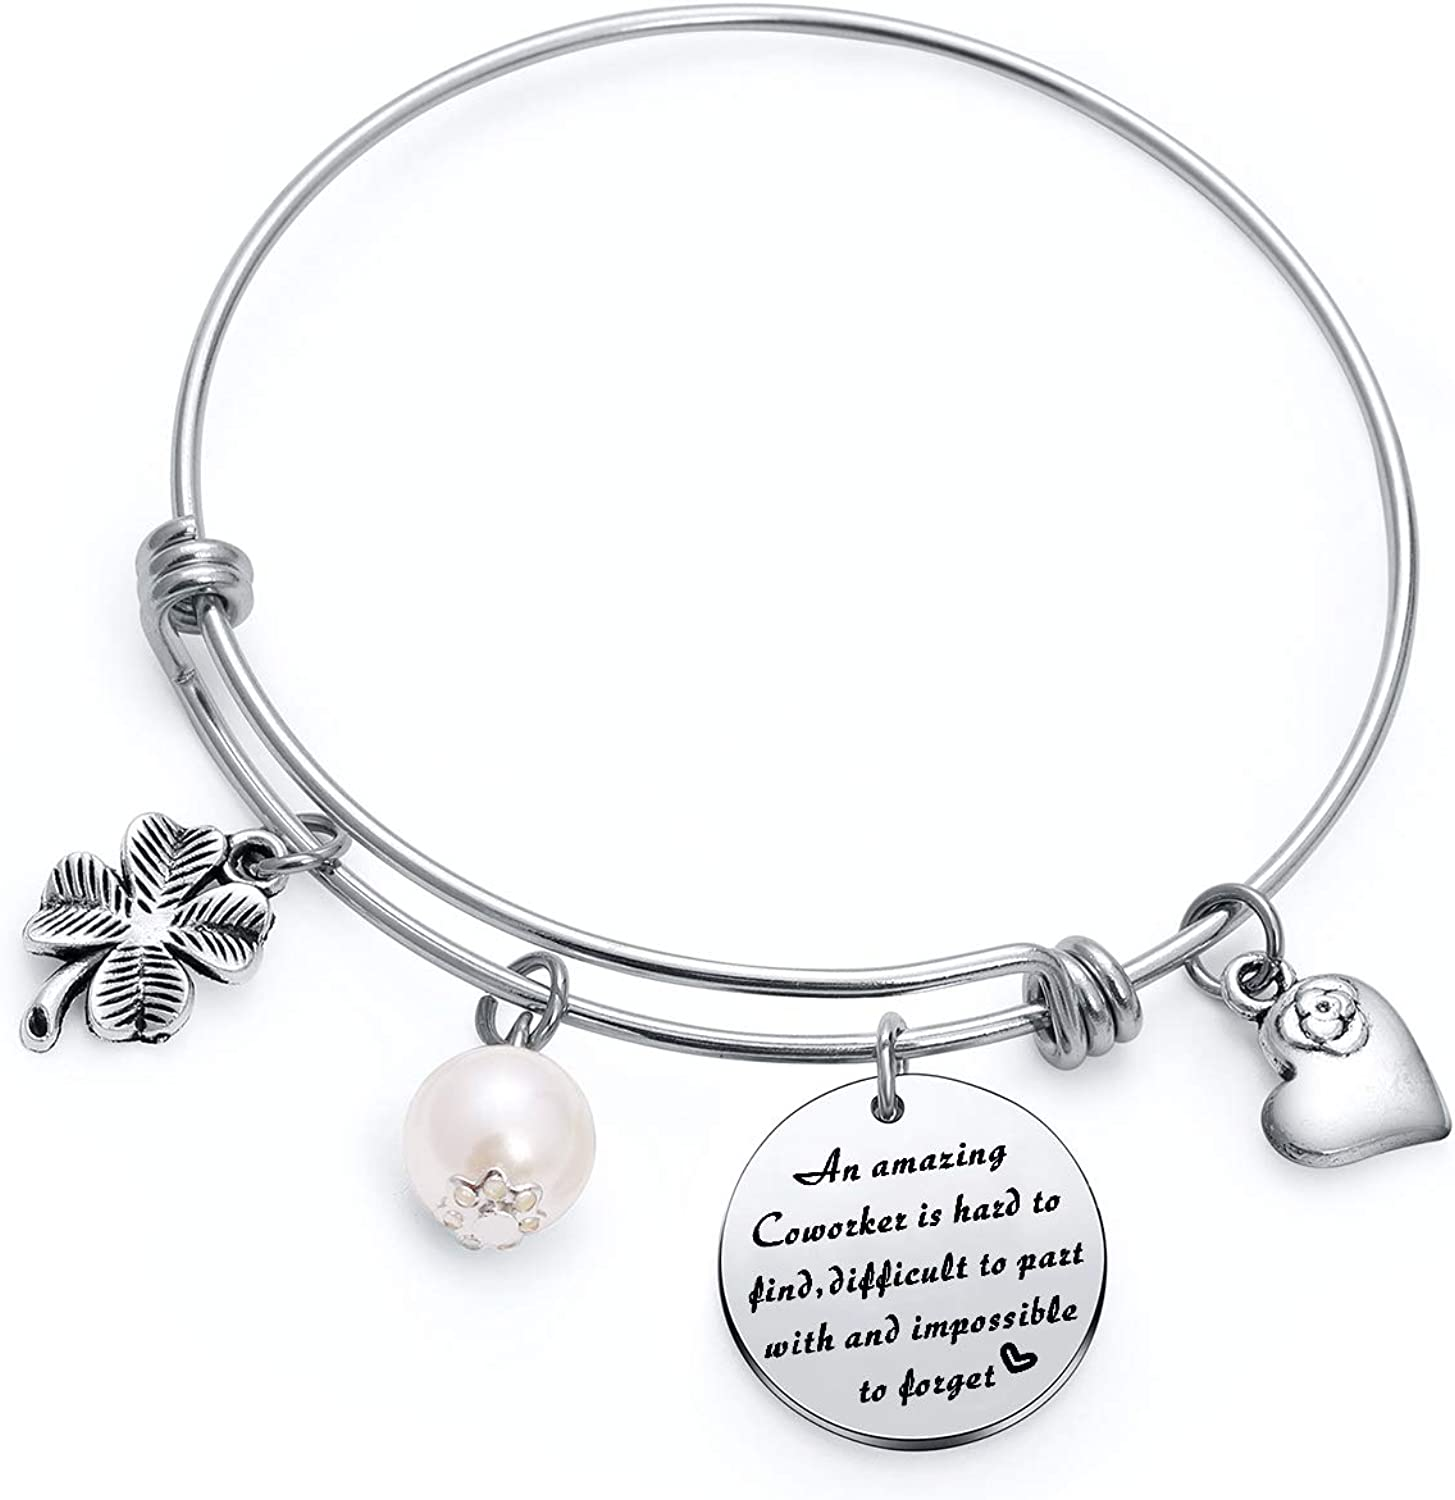 TzrNhm Blossom an Amazing Coworker is Hard to Find Difficult to Part with and Impossible to Forget Bangle Keychain Gfts for Coworkers,Business Partner,Boss,Friends